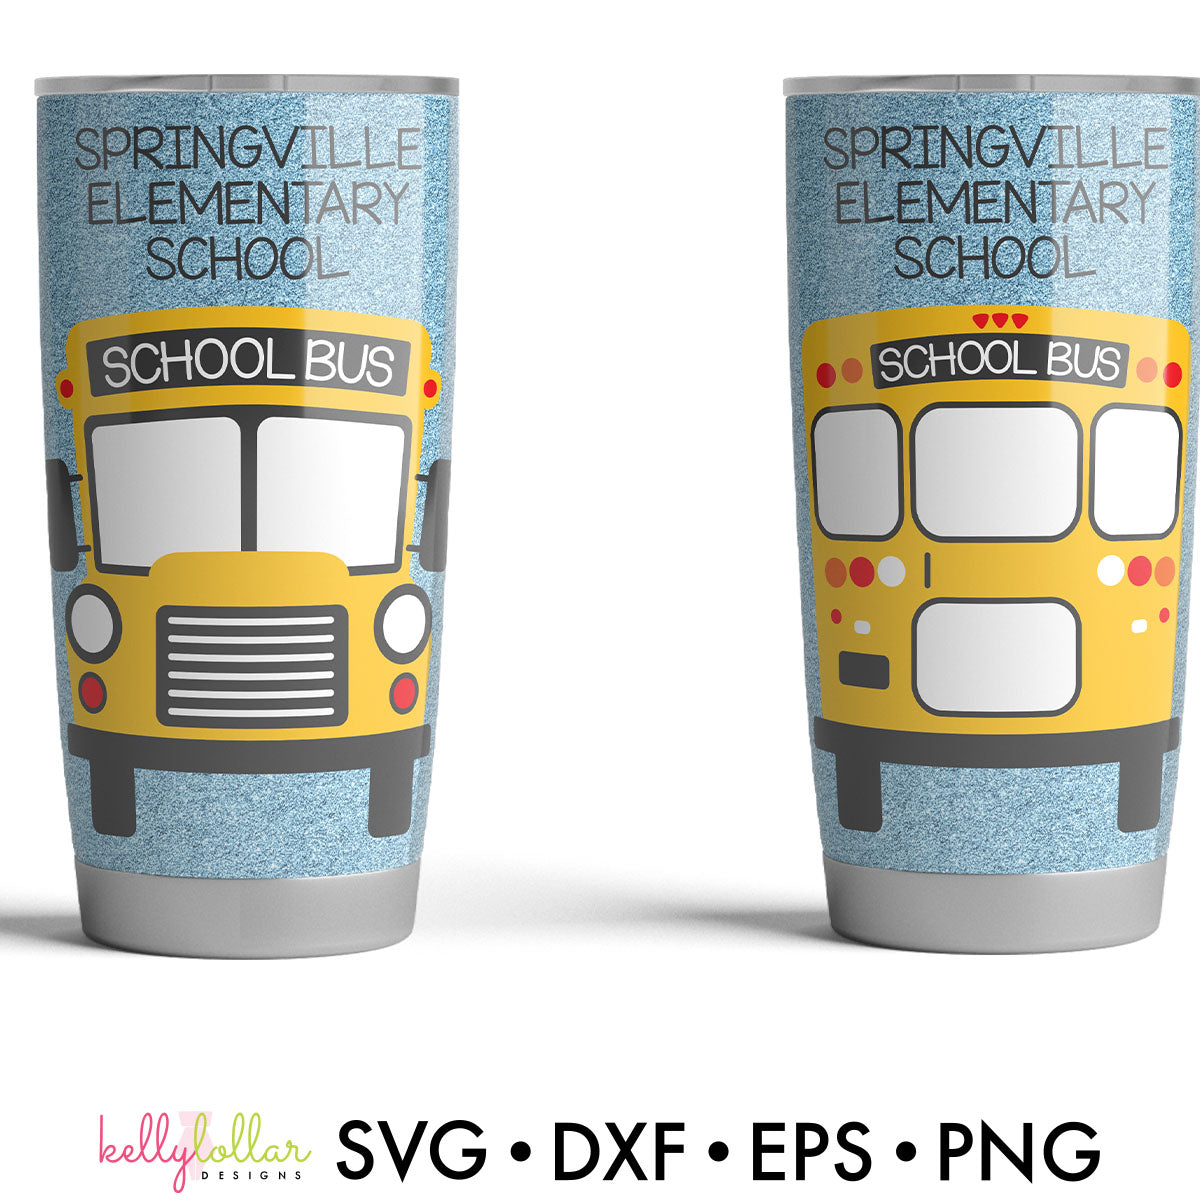 School Bus | SVG DXF EPS PNG Cut Files Clip Art Style School Bus with Replaceable Text | SVG DXF EPS PNG Cut Files Cute, cartoon school bus great for back to school projects and bus driver gifts.This is